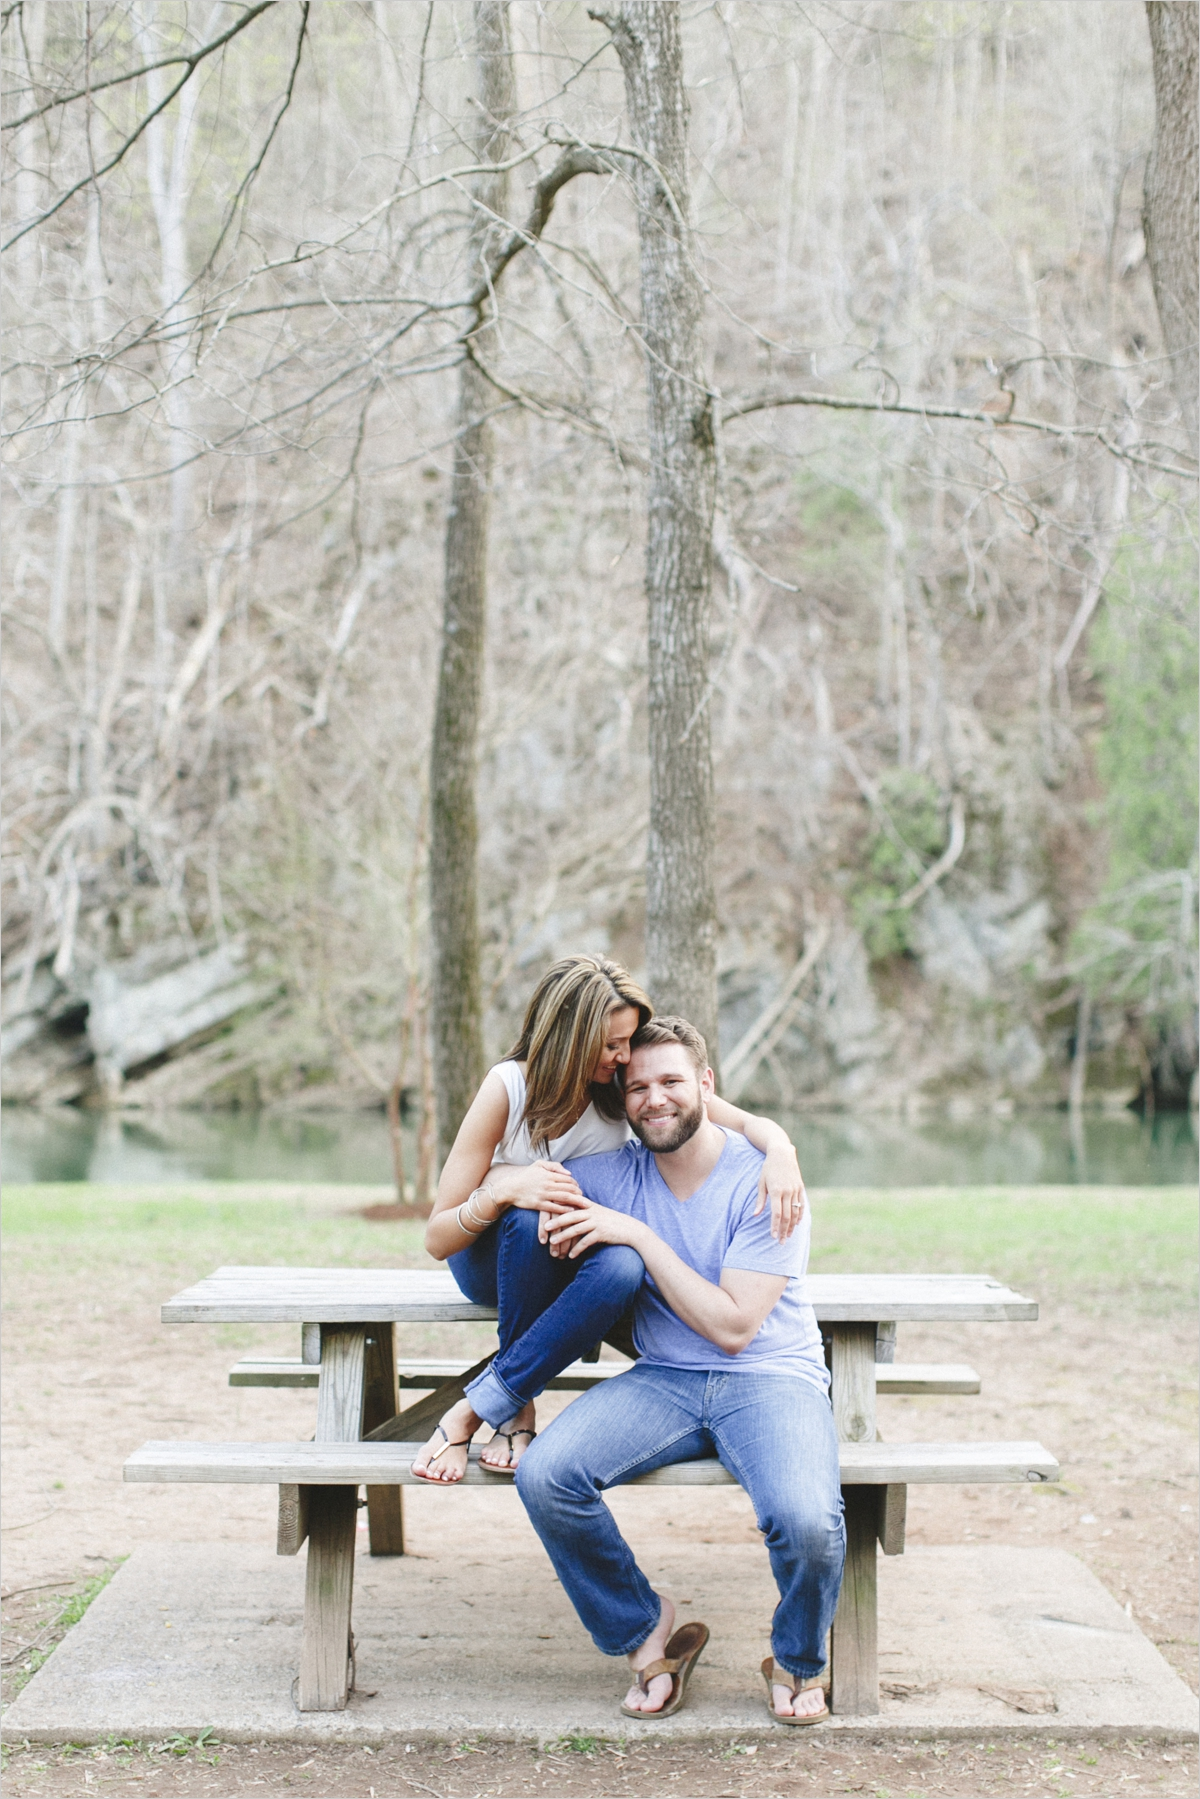 erica-jeremy-surprise-proposal-harrisonburg-virginia_0021